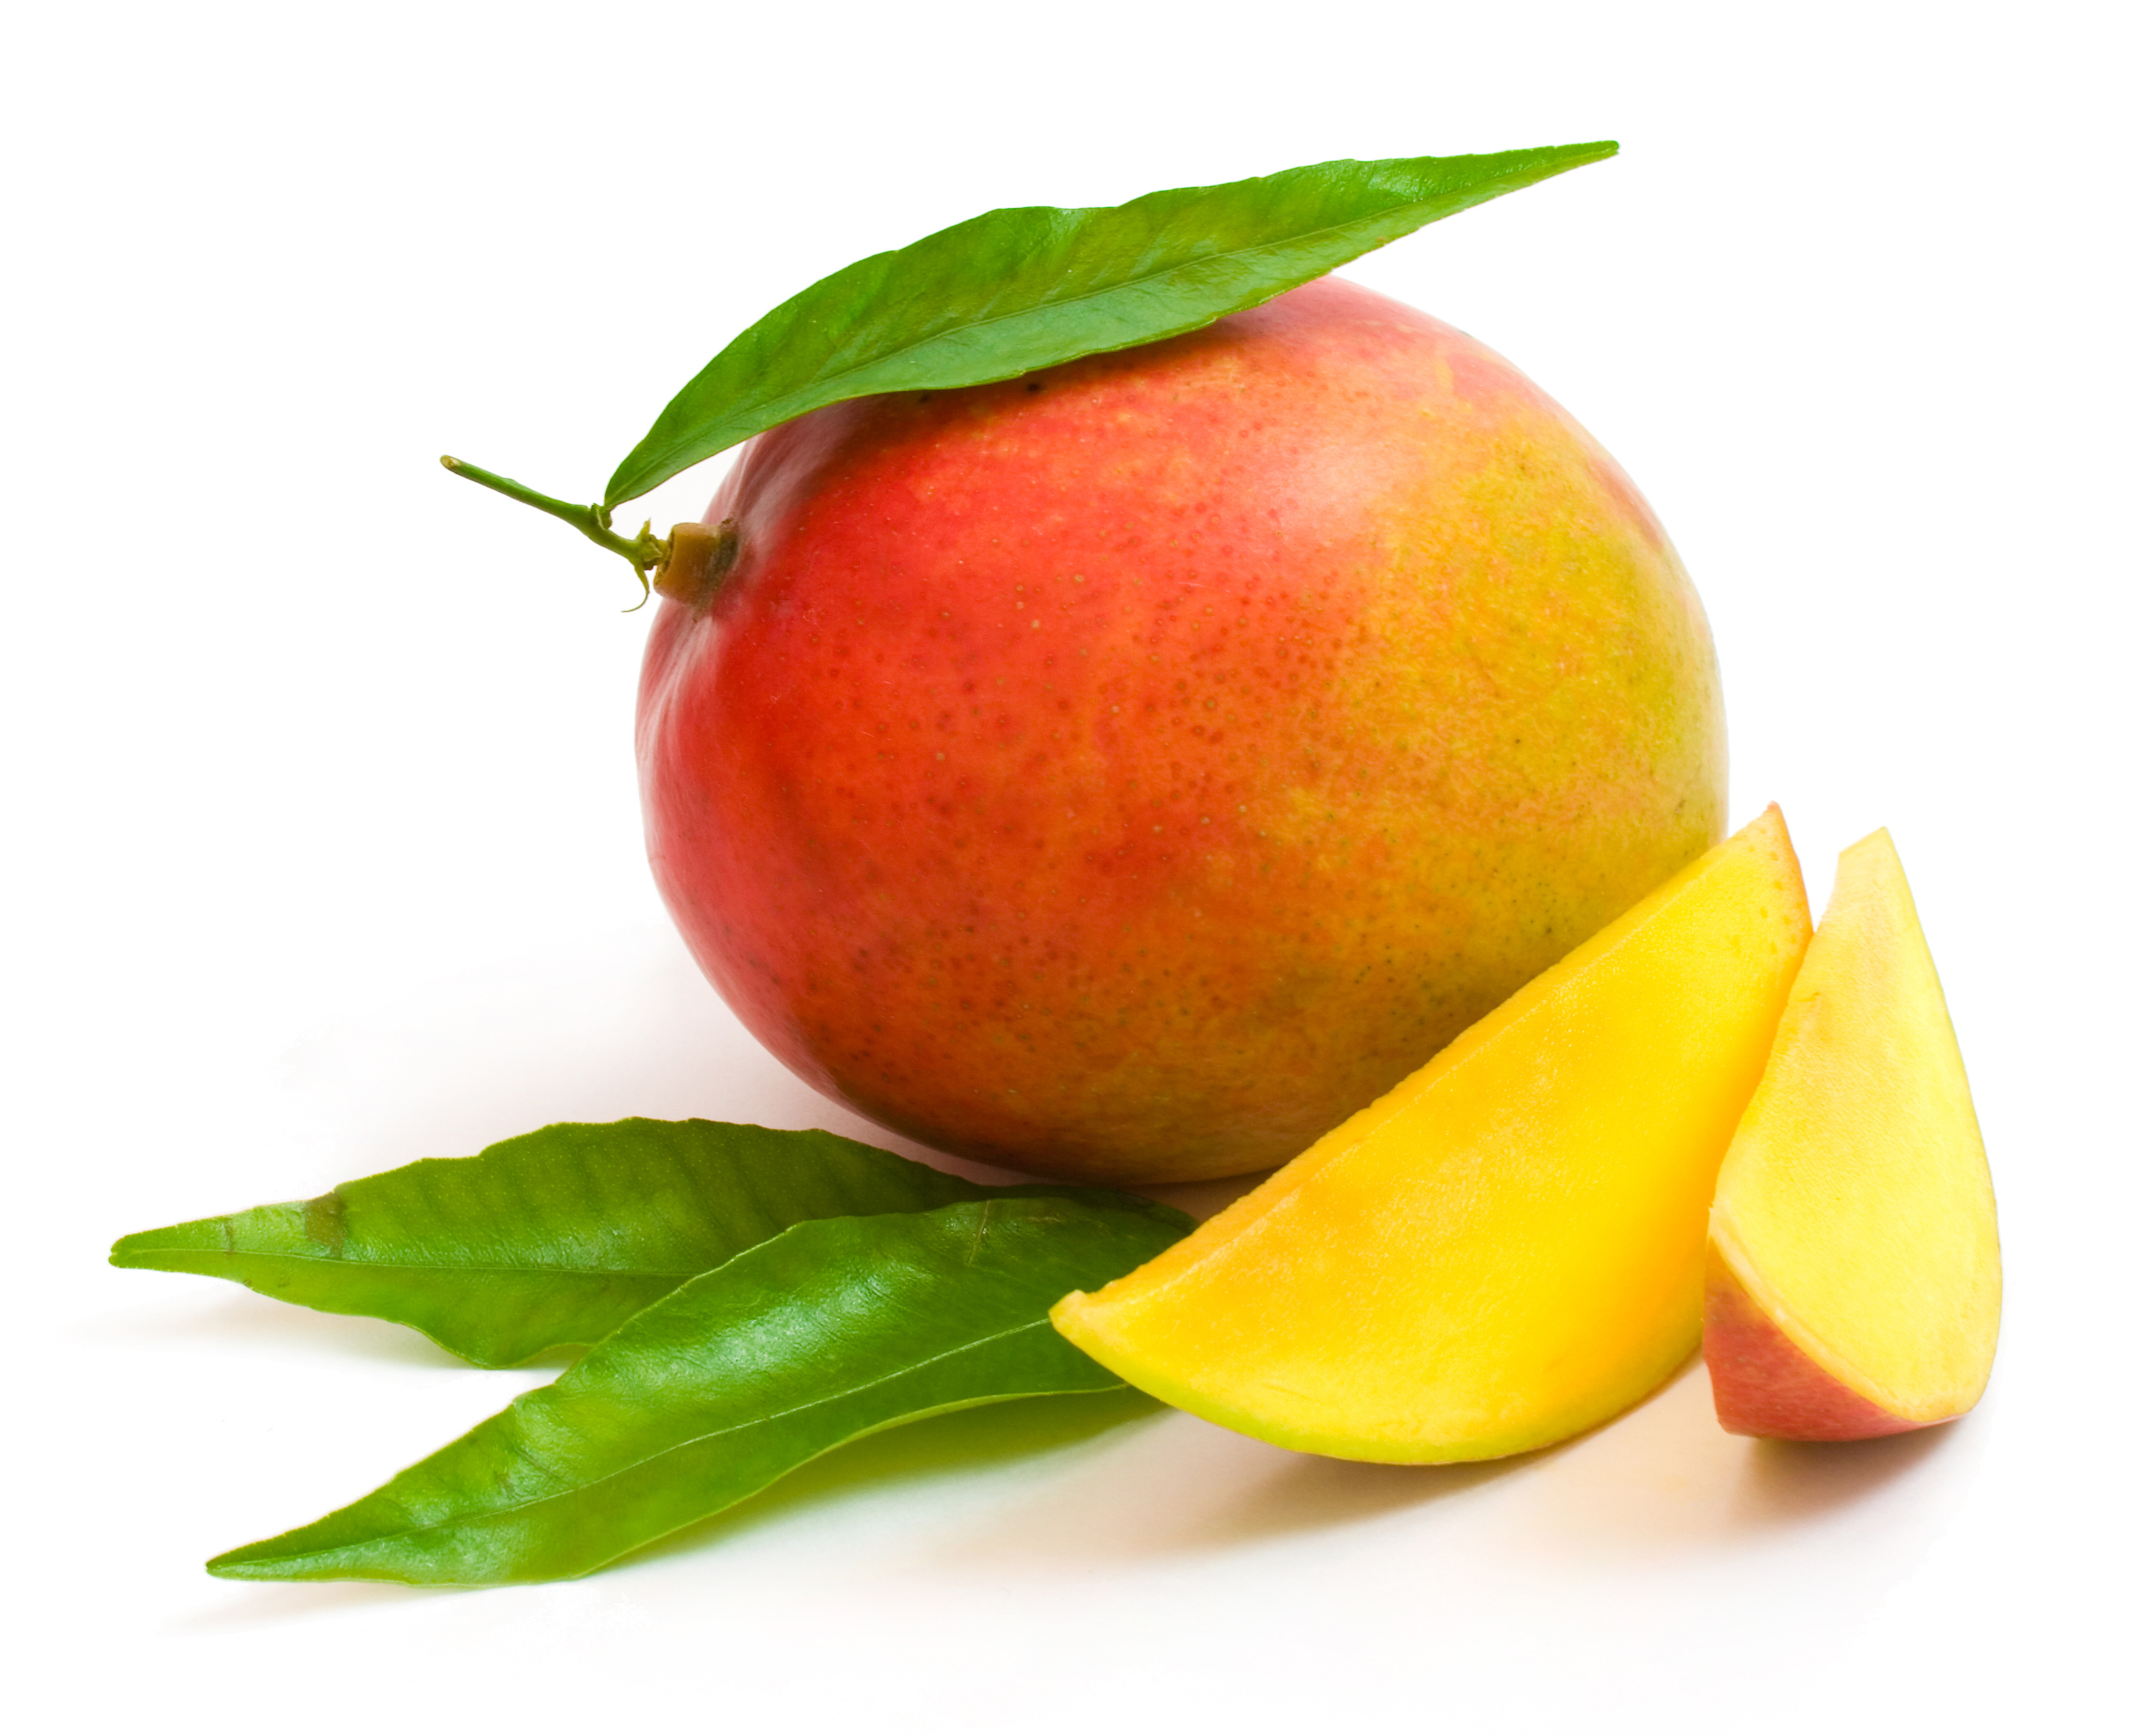 Ripe Mango with Green Leaves